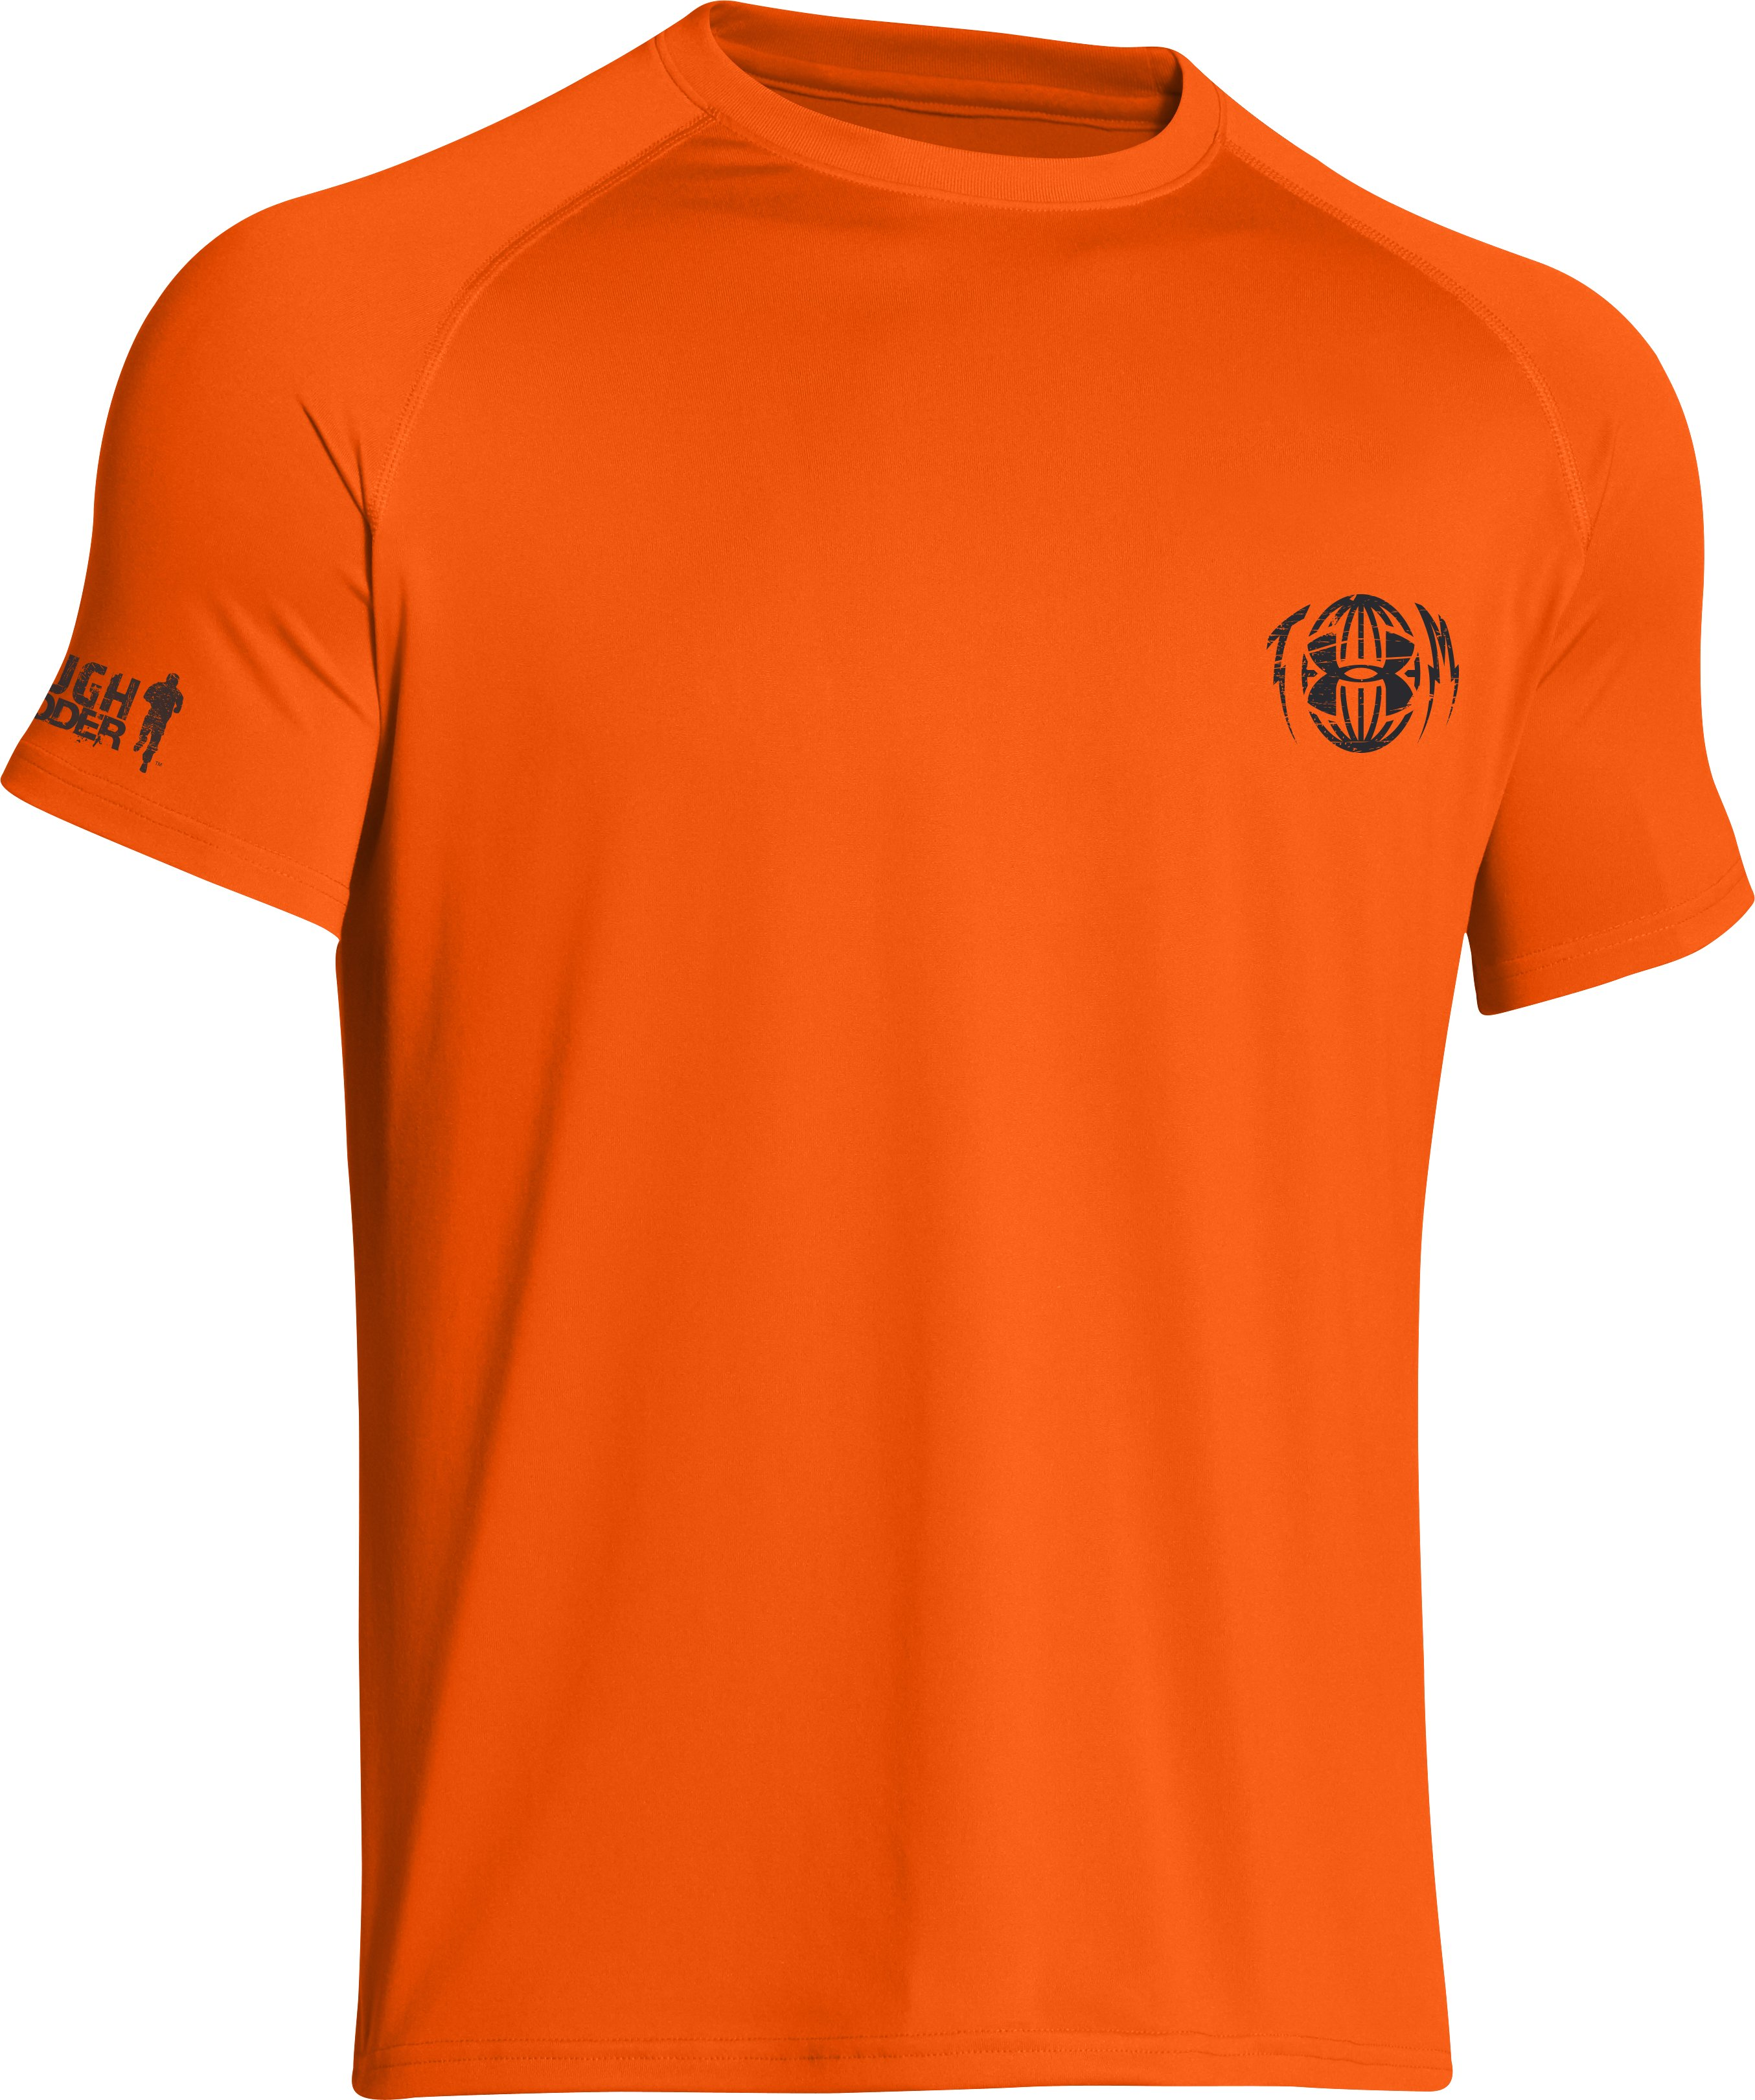 Men's UA Tough Mudder Worldwide T-Shirt, Vivid,